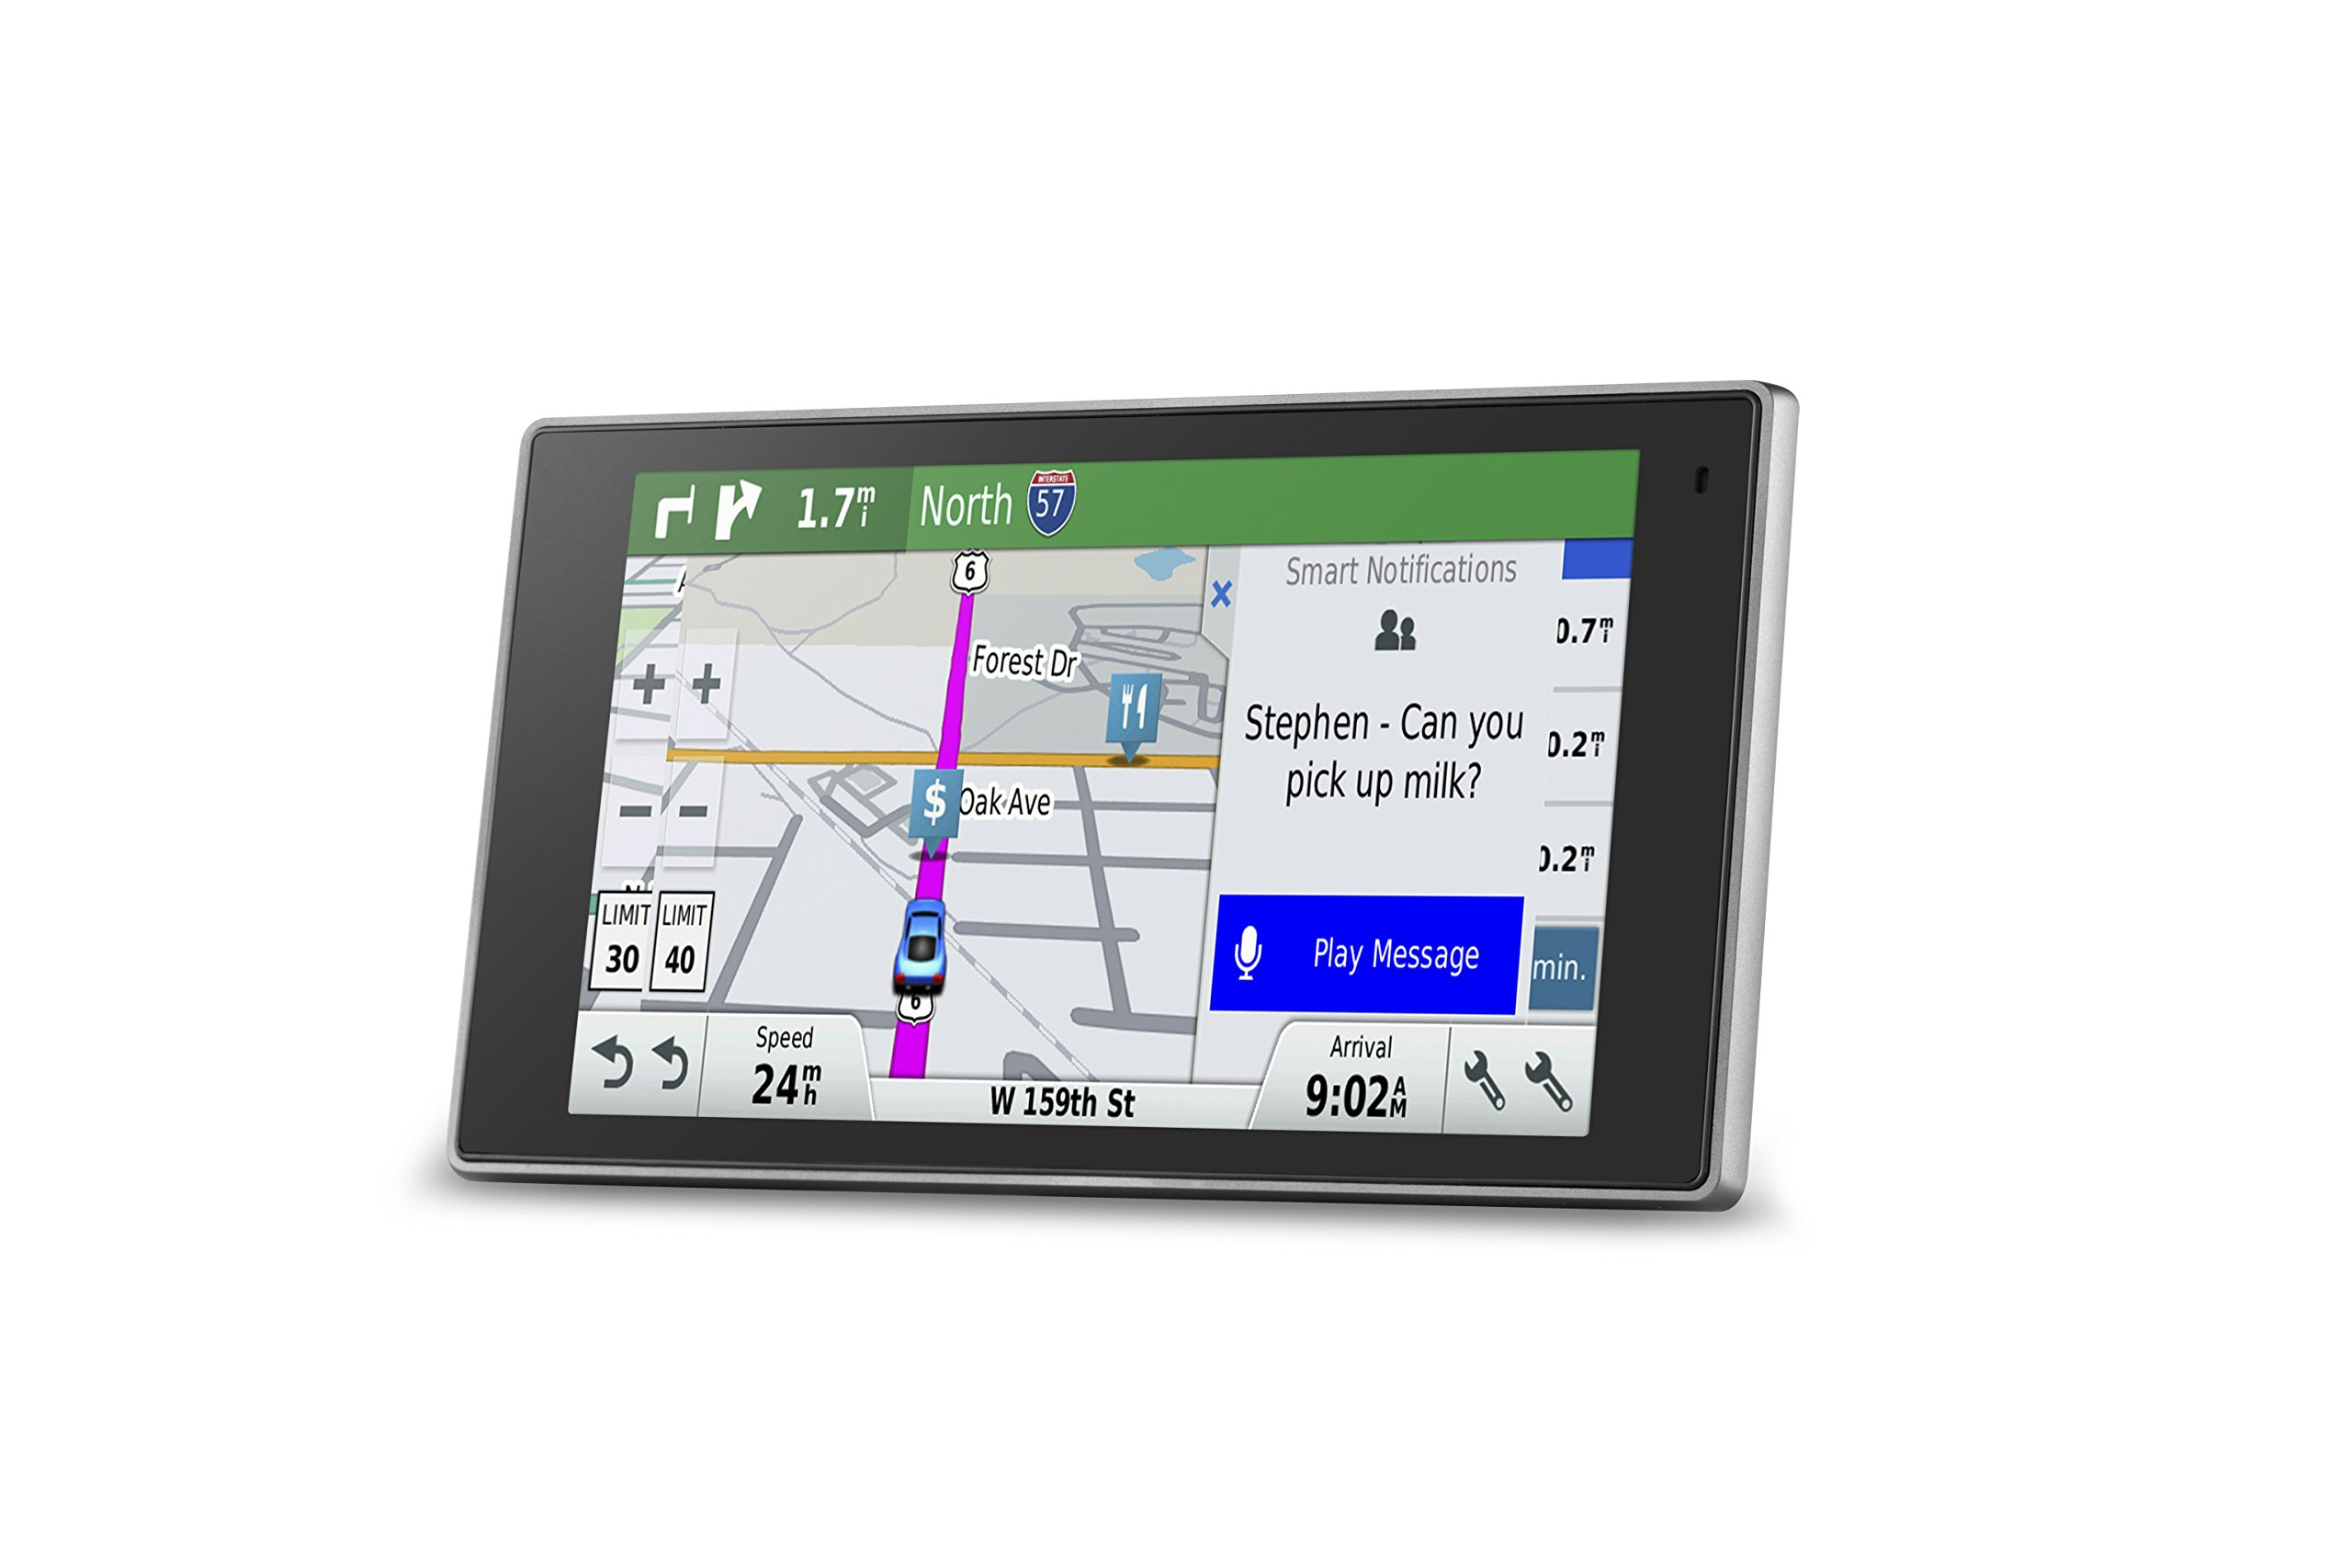 Garmin DriveLuxe 50 NA LMTHD GPS Navigator System with Lifetime Maps and Traffic, Smart Notifications, Voice Activation, Driver Alerts, and a Sleek Metal Design by Garmin